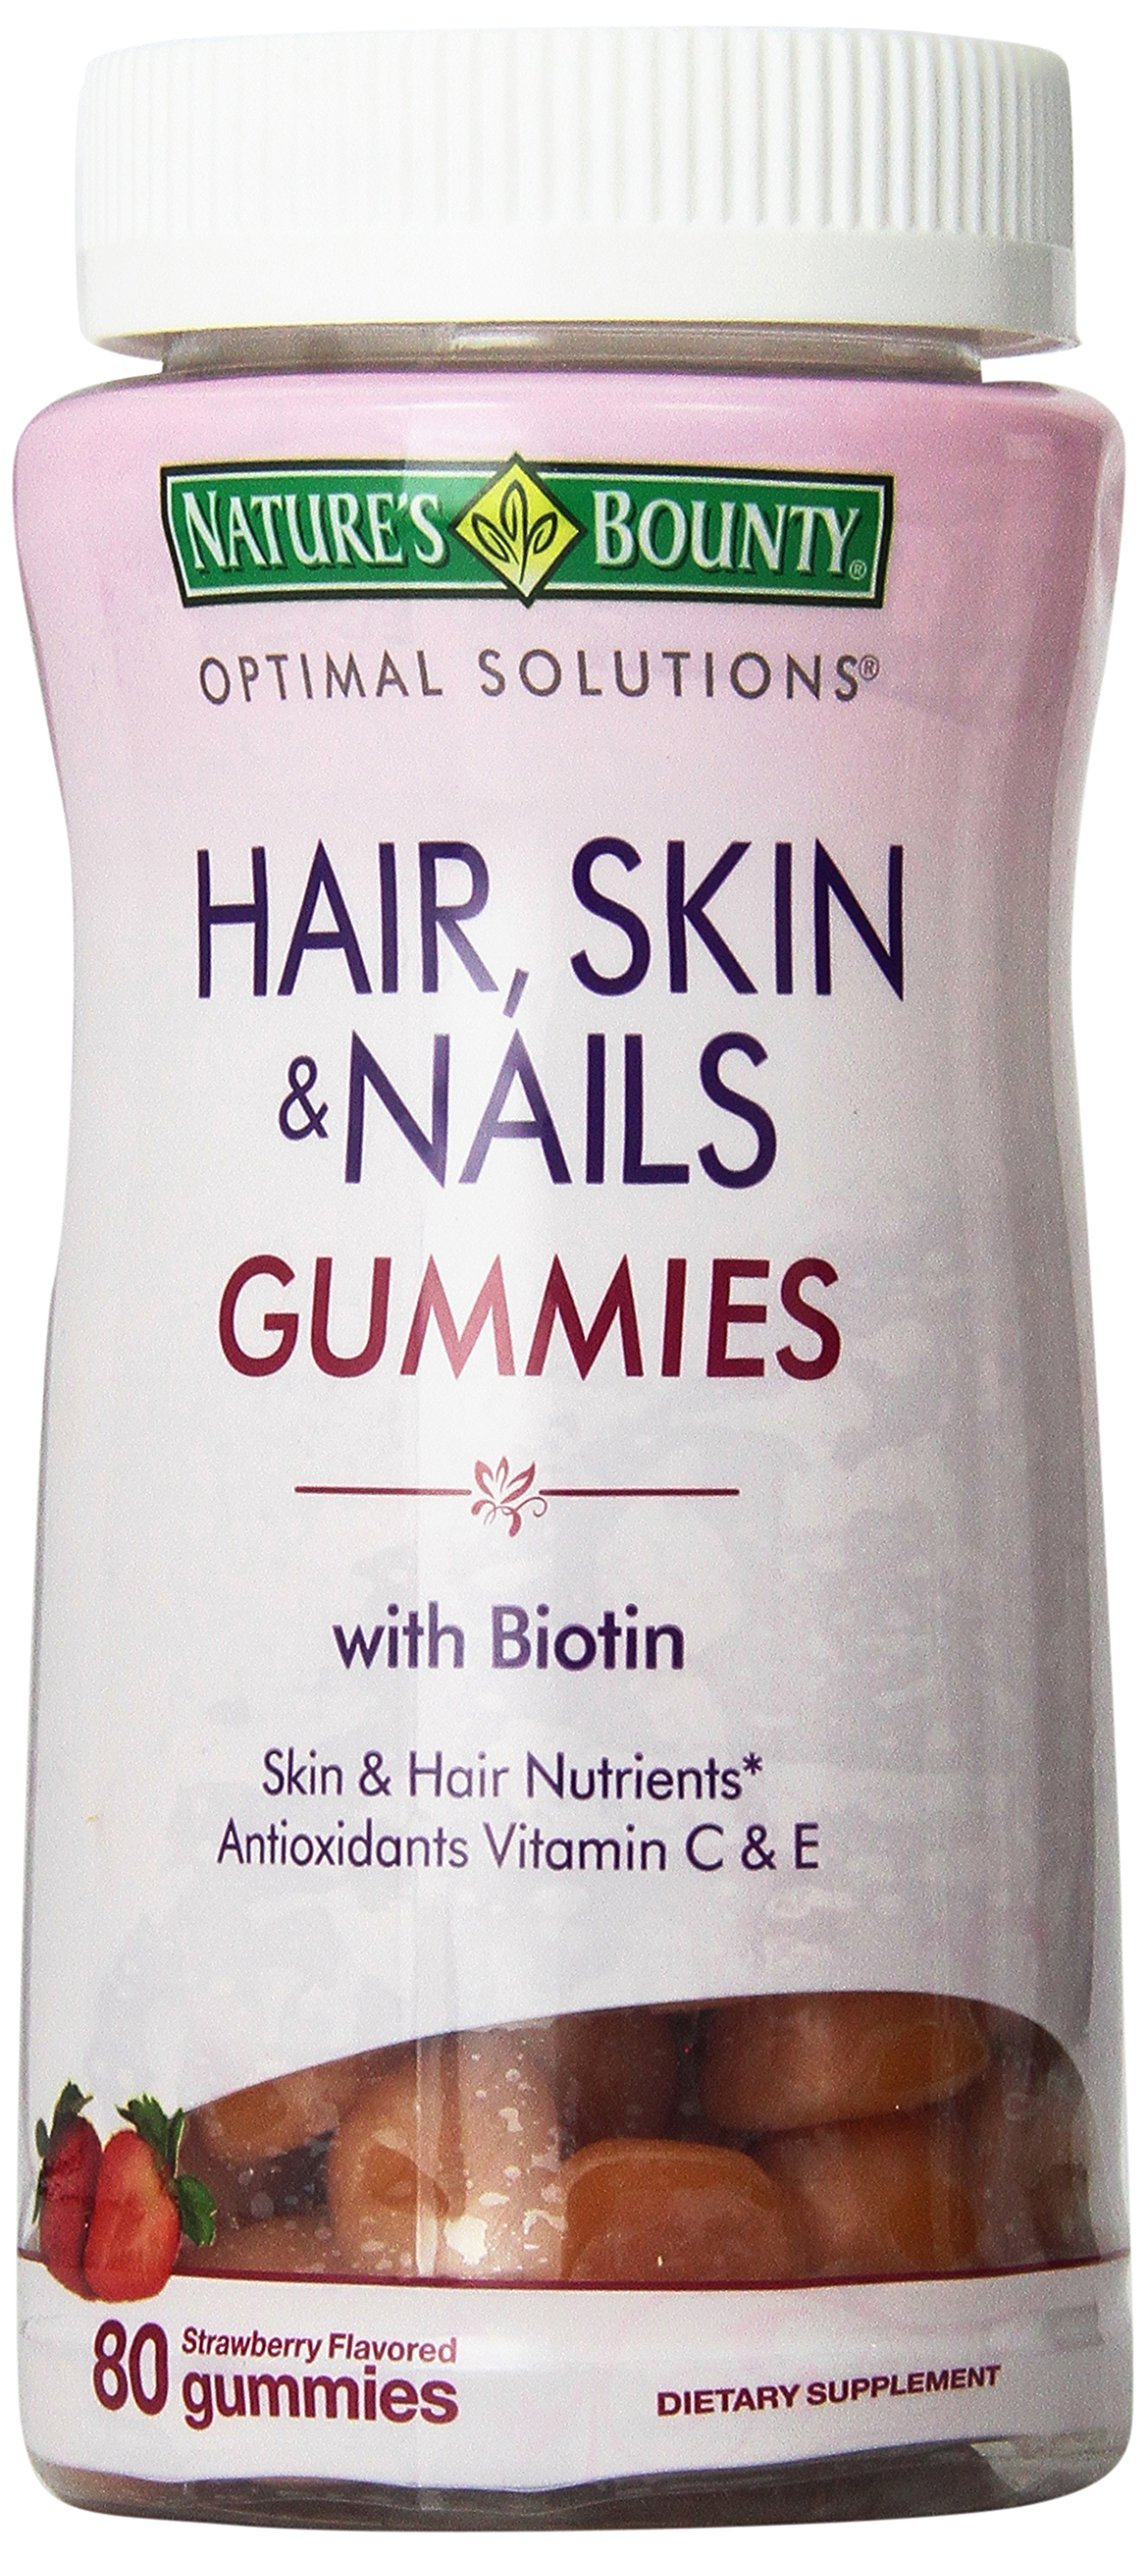 Natures Bounty Optimal Solutions, Hair, Skin & Nails Gummies with Biotin 80 Count (Pack of 2)